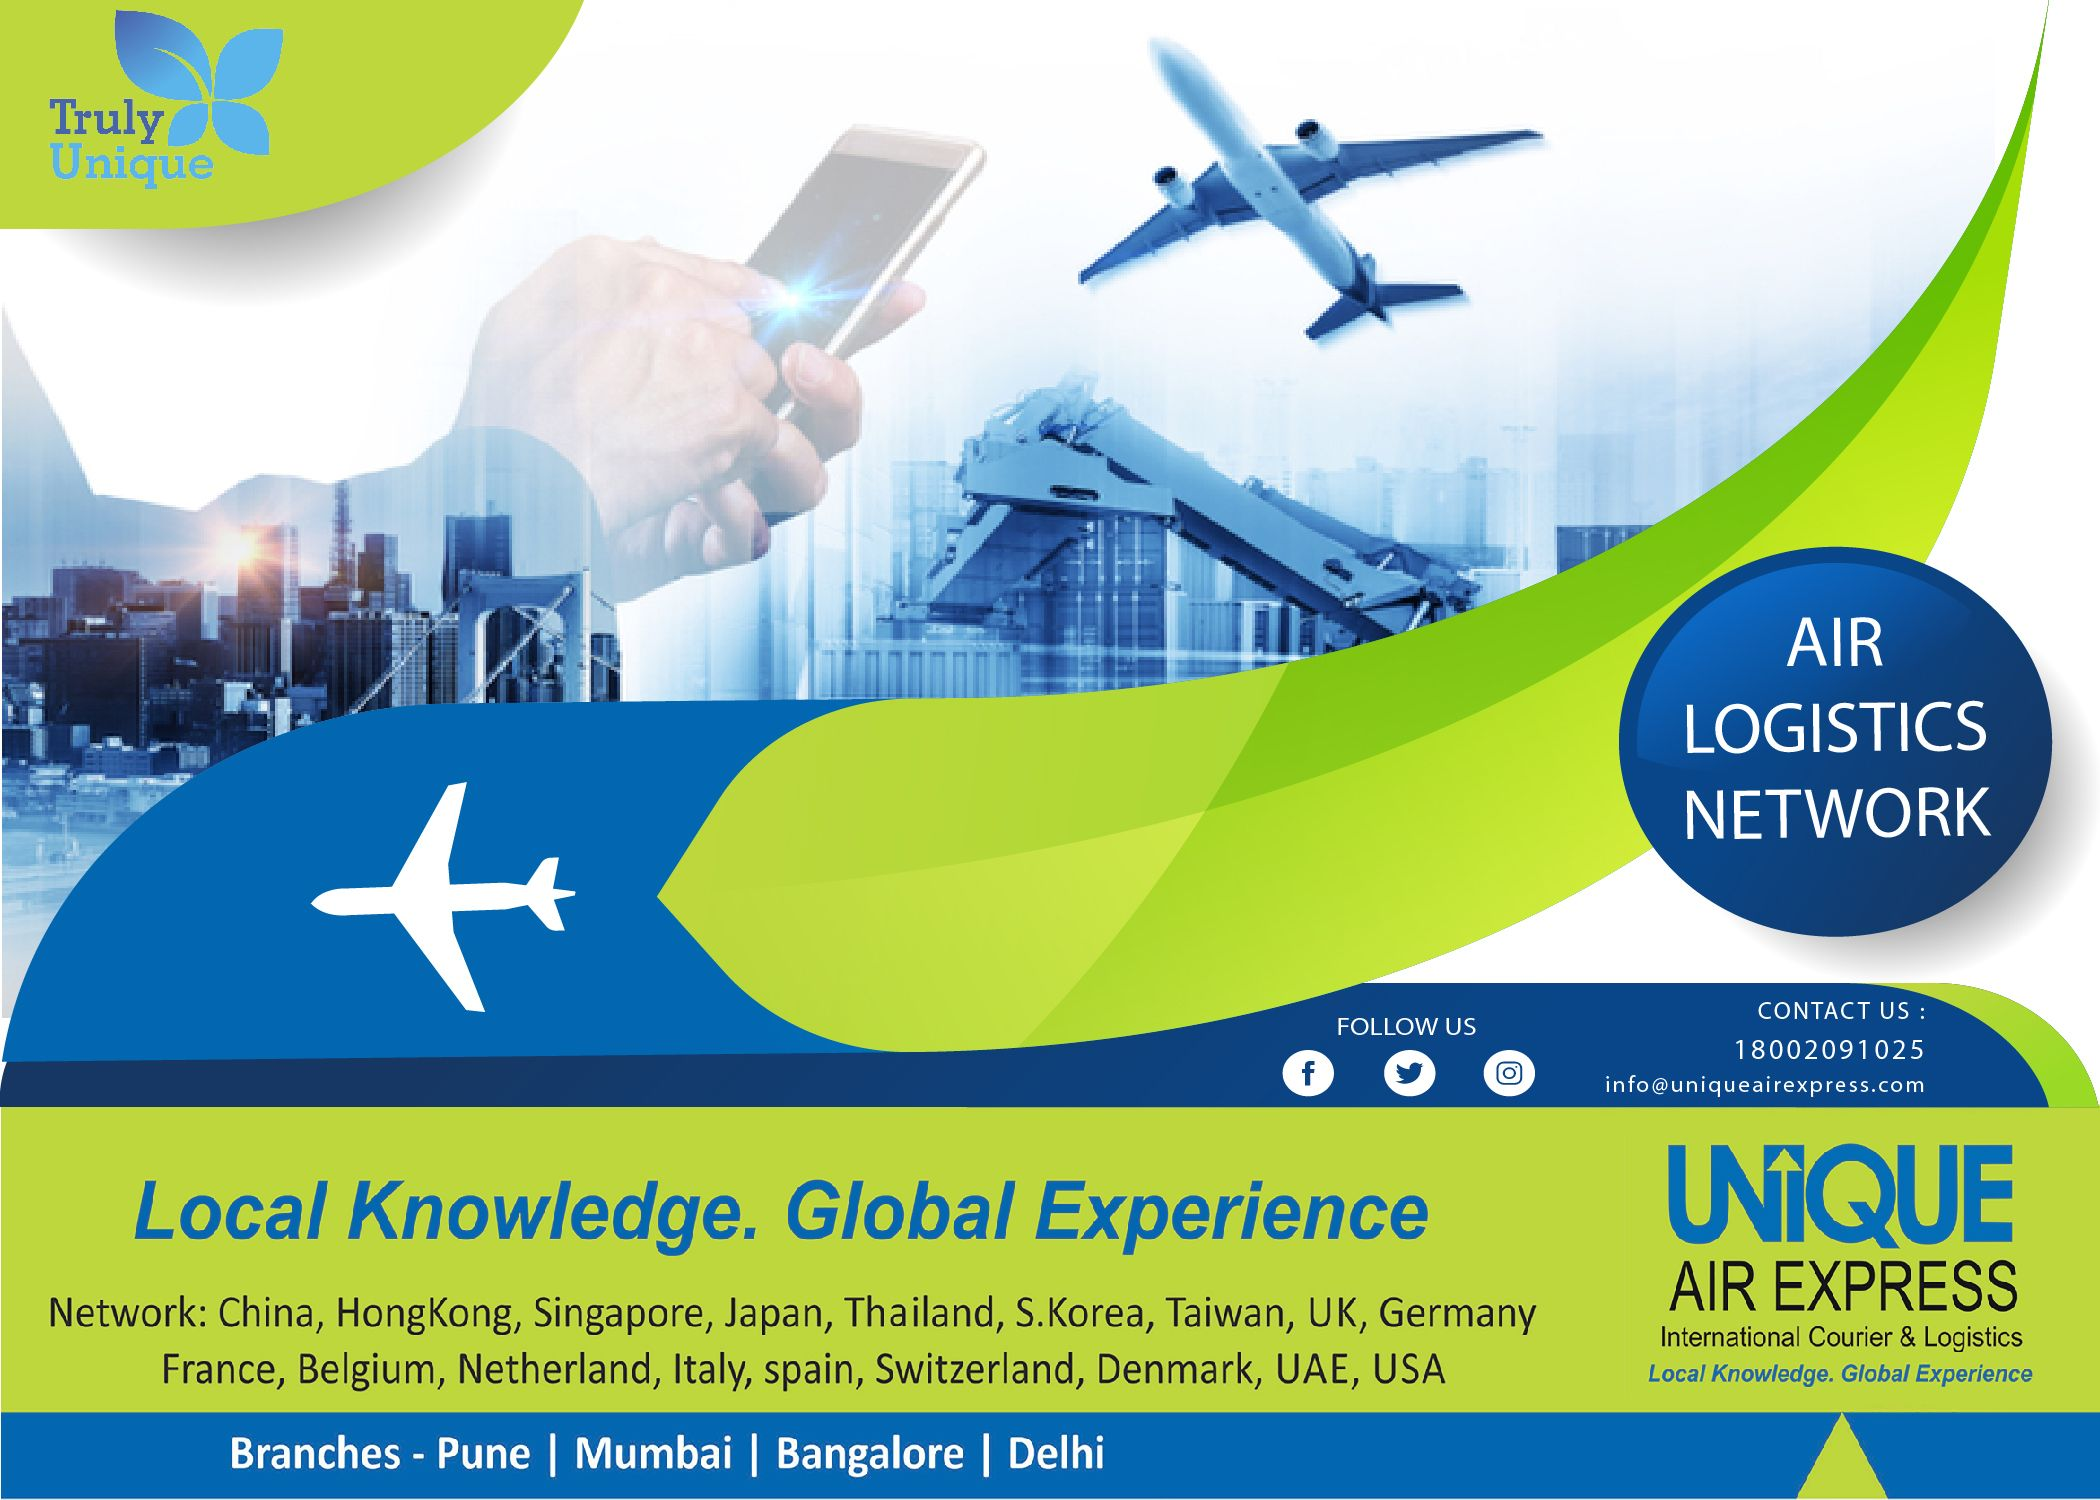 Unique Air Express provides Best Solutions in